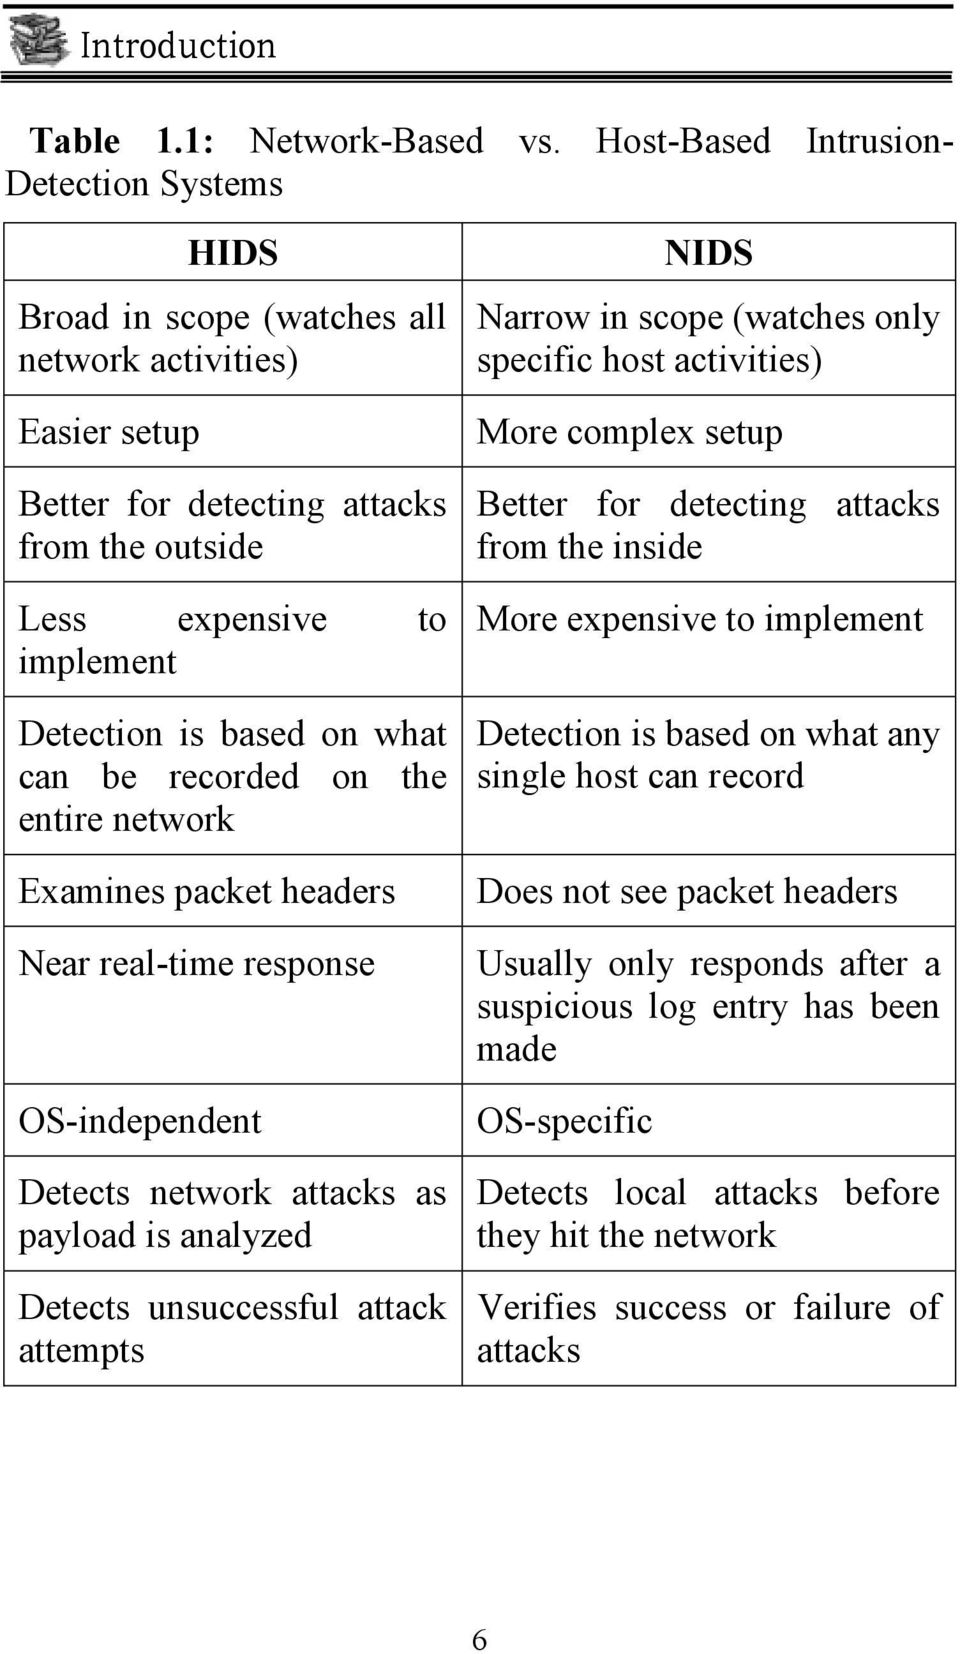 detecting attacks Better for detecting attacks from the outside from the inside Less expensive implement to More expensive to implement Detection is based on what Detection is based on what any can